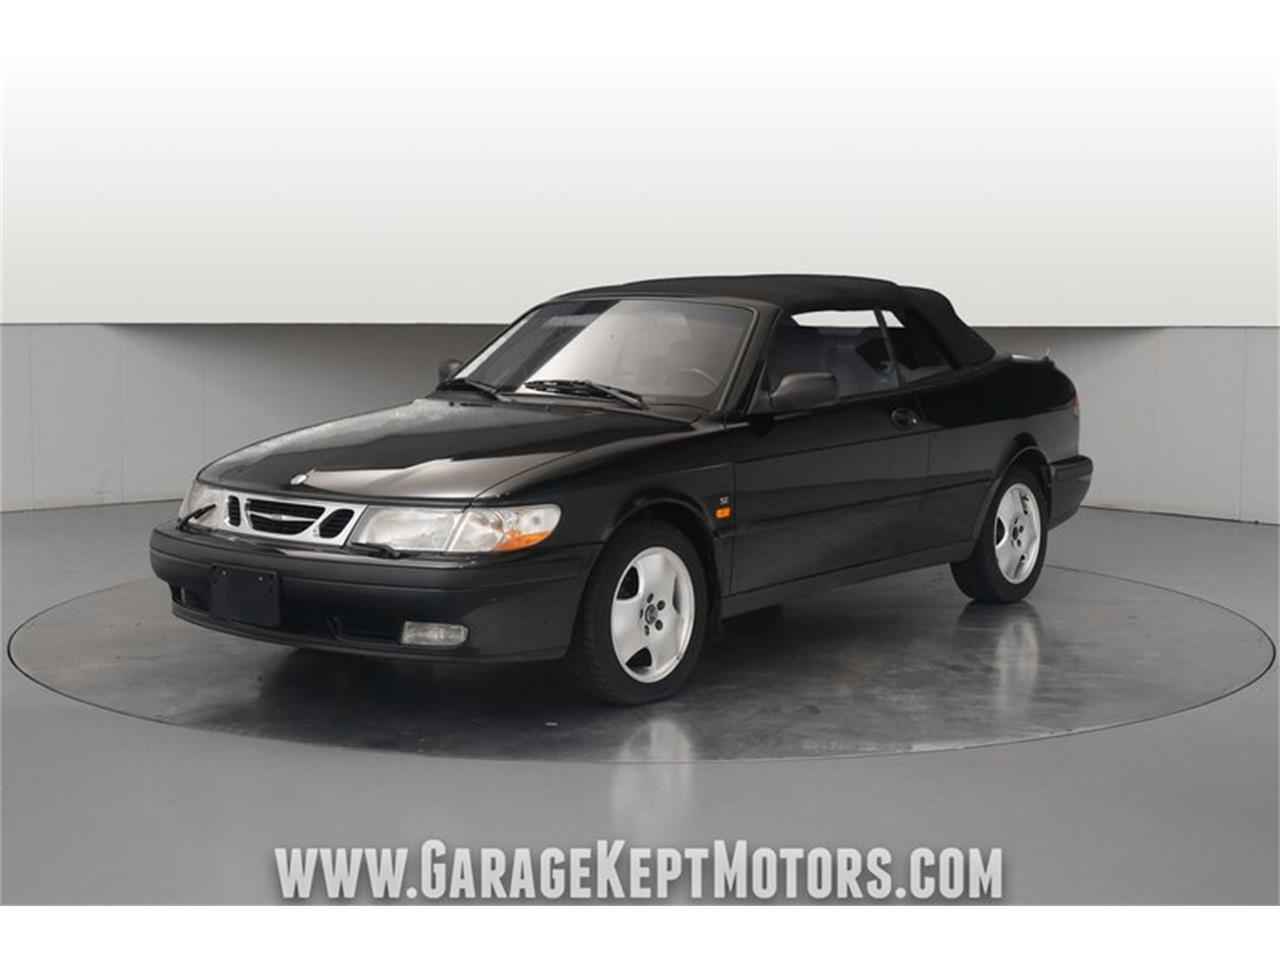 1999 Saab 9-3 for sale in Grand Rapids, MI – photo 7